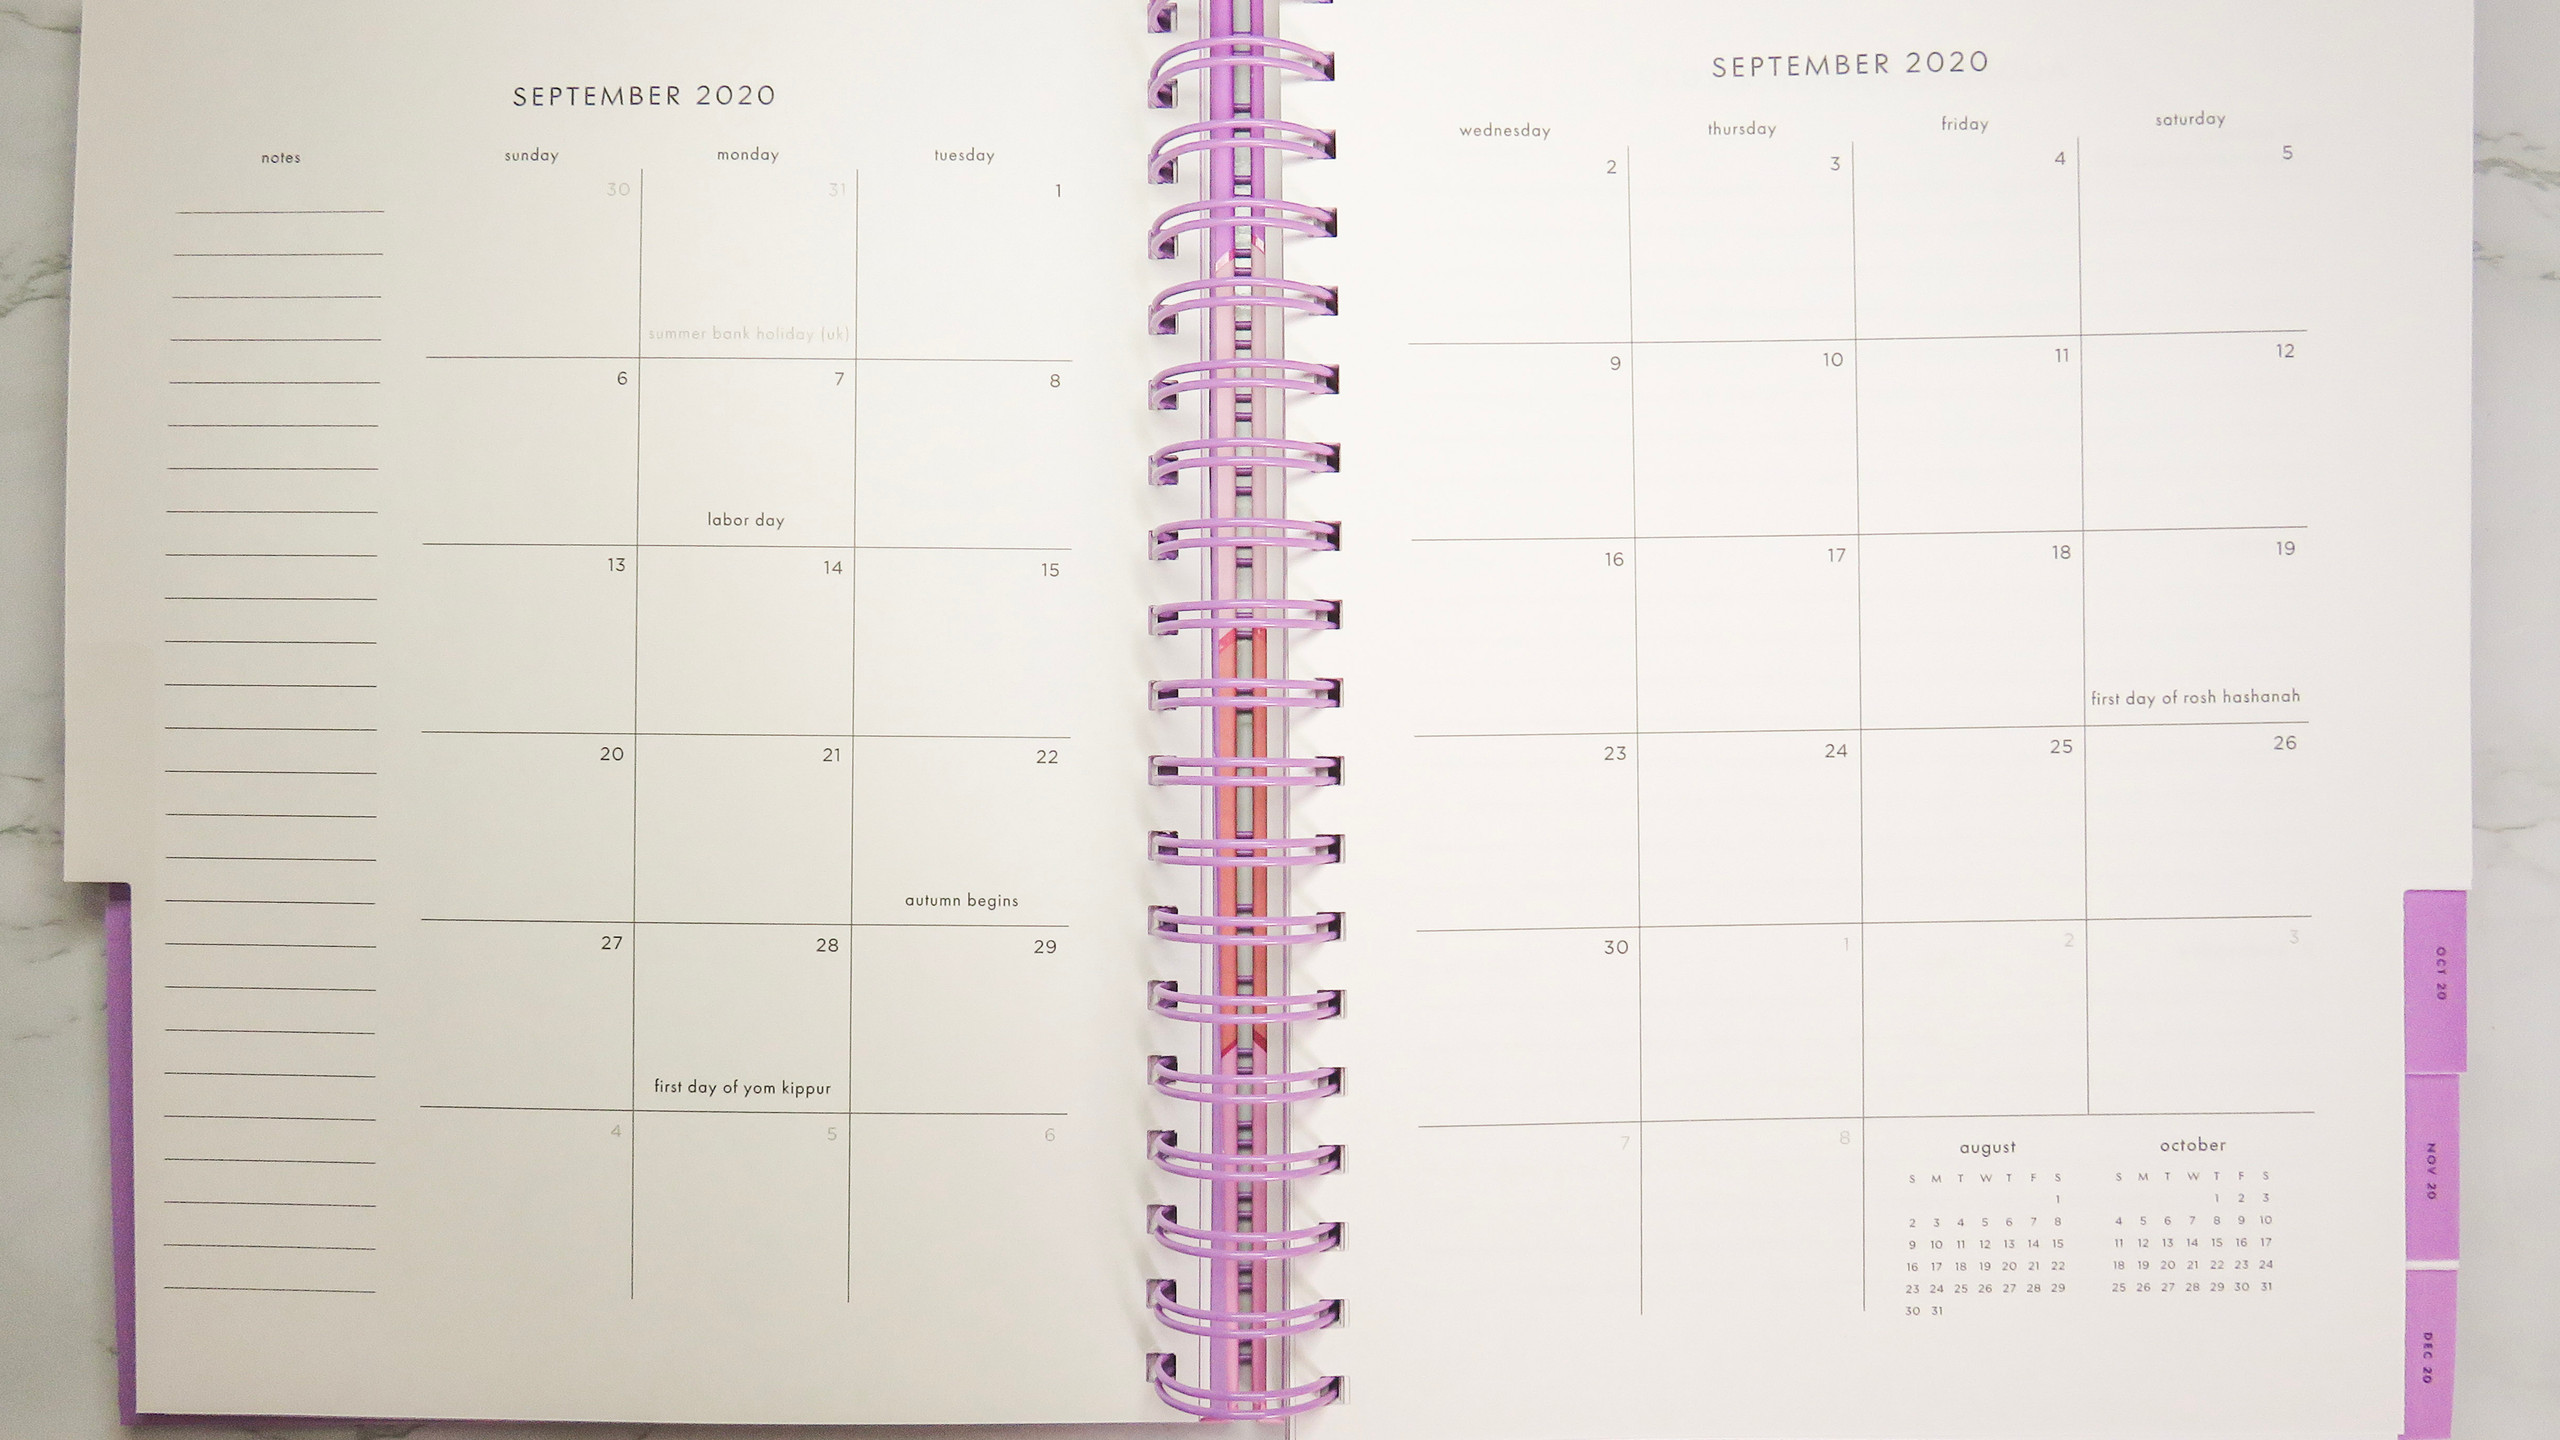 Monthly calendar view of the Kate Spade New York planner